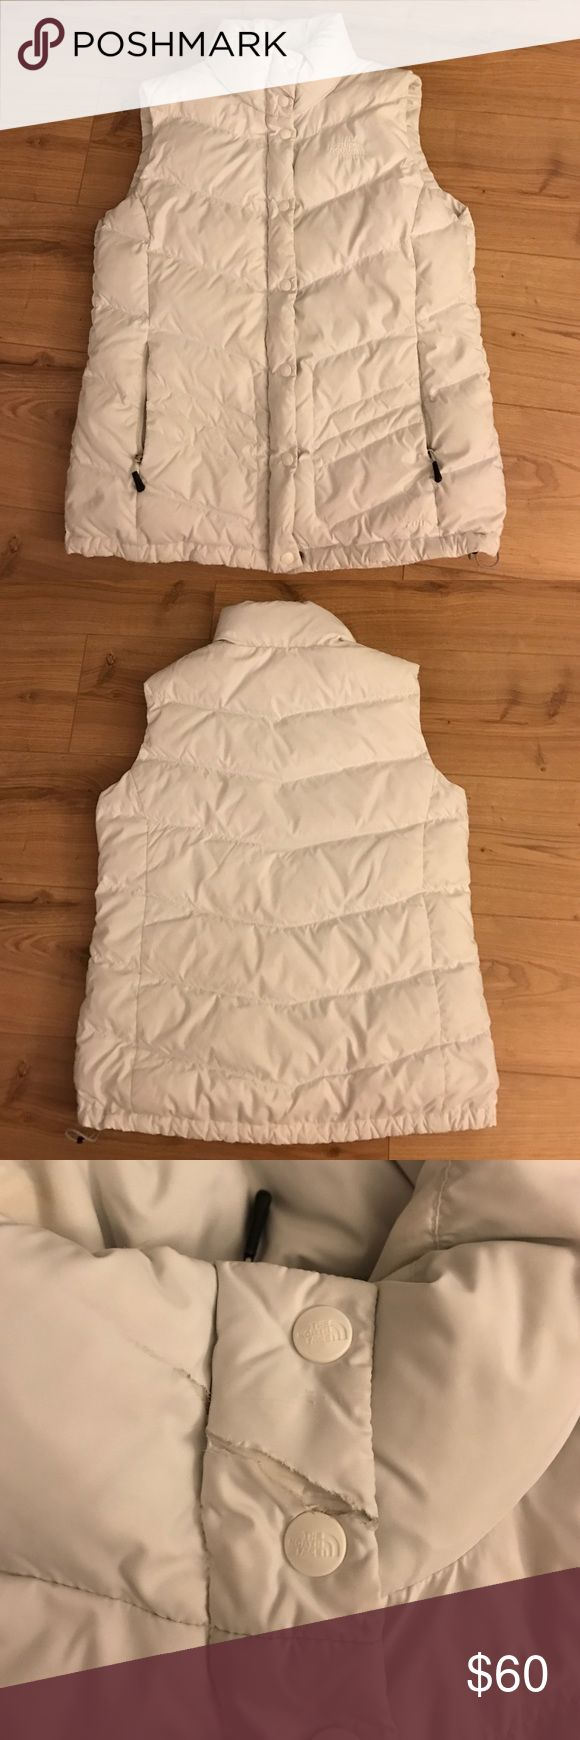 Women's North Face Nuptse down vest White down winter vest by Northface!! One of my favorite must haves! Vest no longer fits me. There is a small deformity/ tear near the top button which is shown in one of the pictures, otherwise in great condition. North Face Jackets & Coats Vests